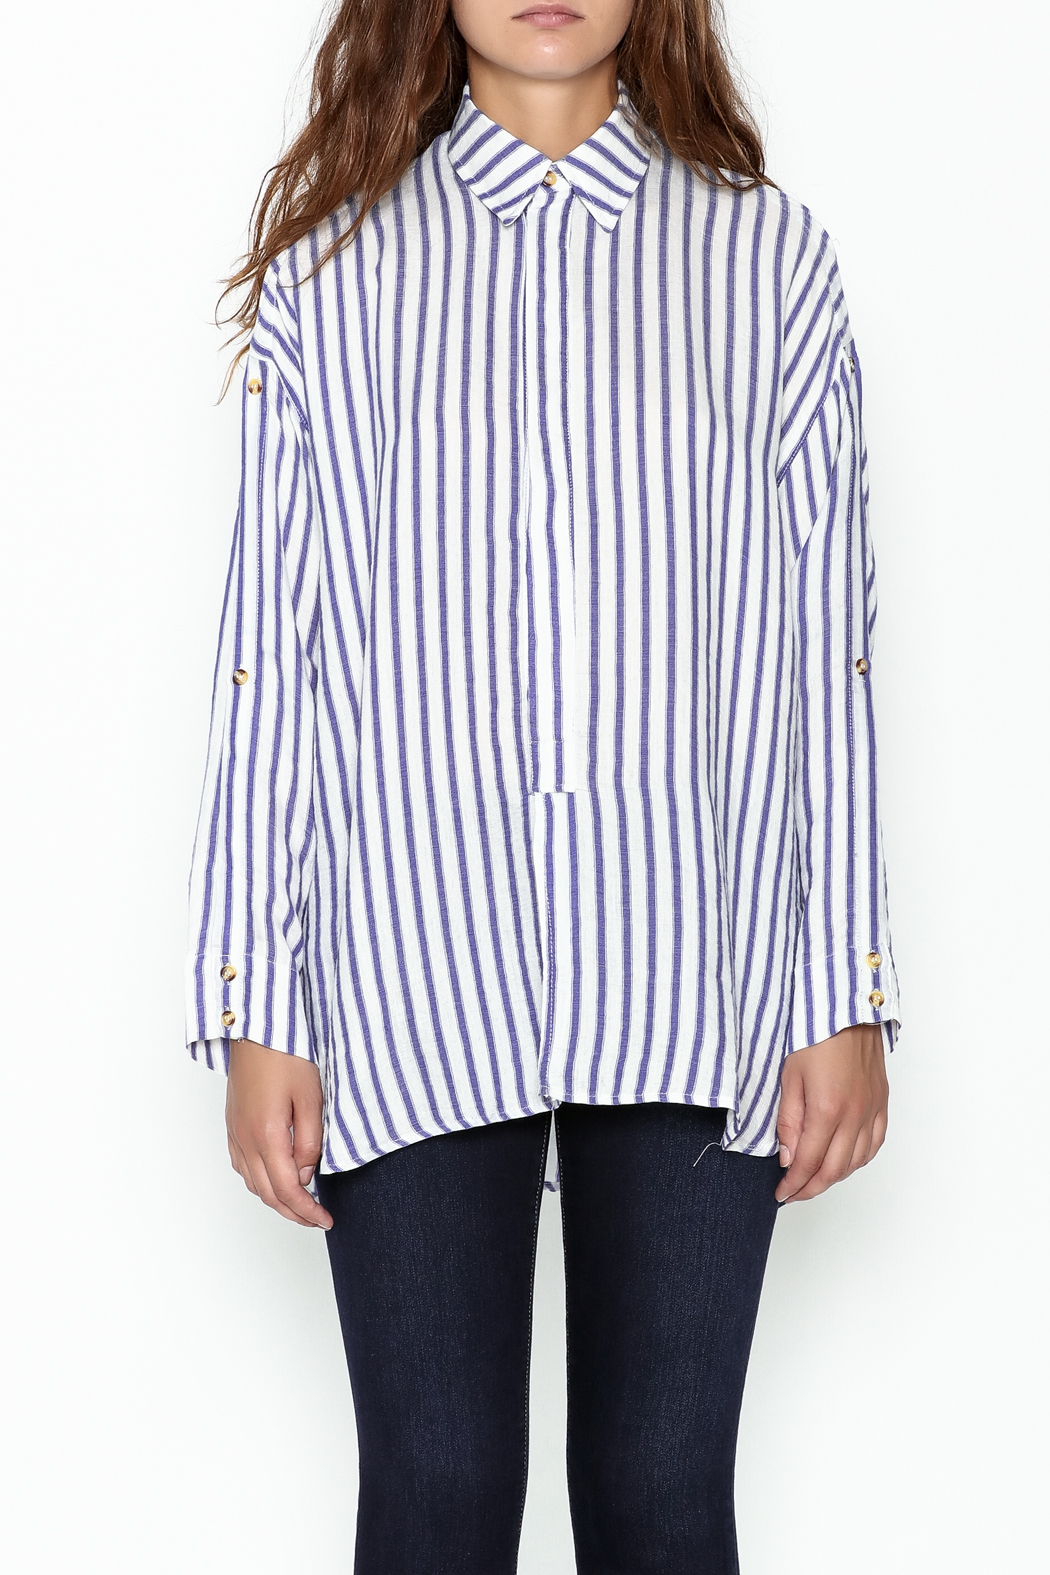 Olivaceous Boyfriend Striped Shirt - Front Full Image